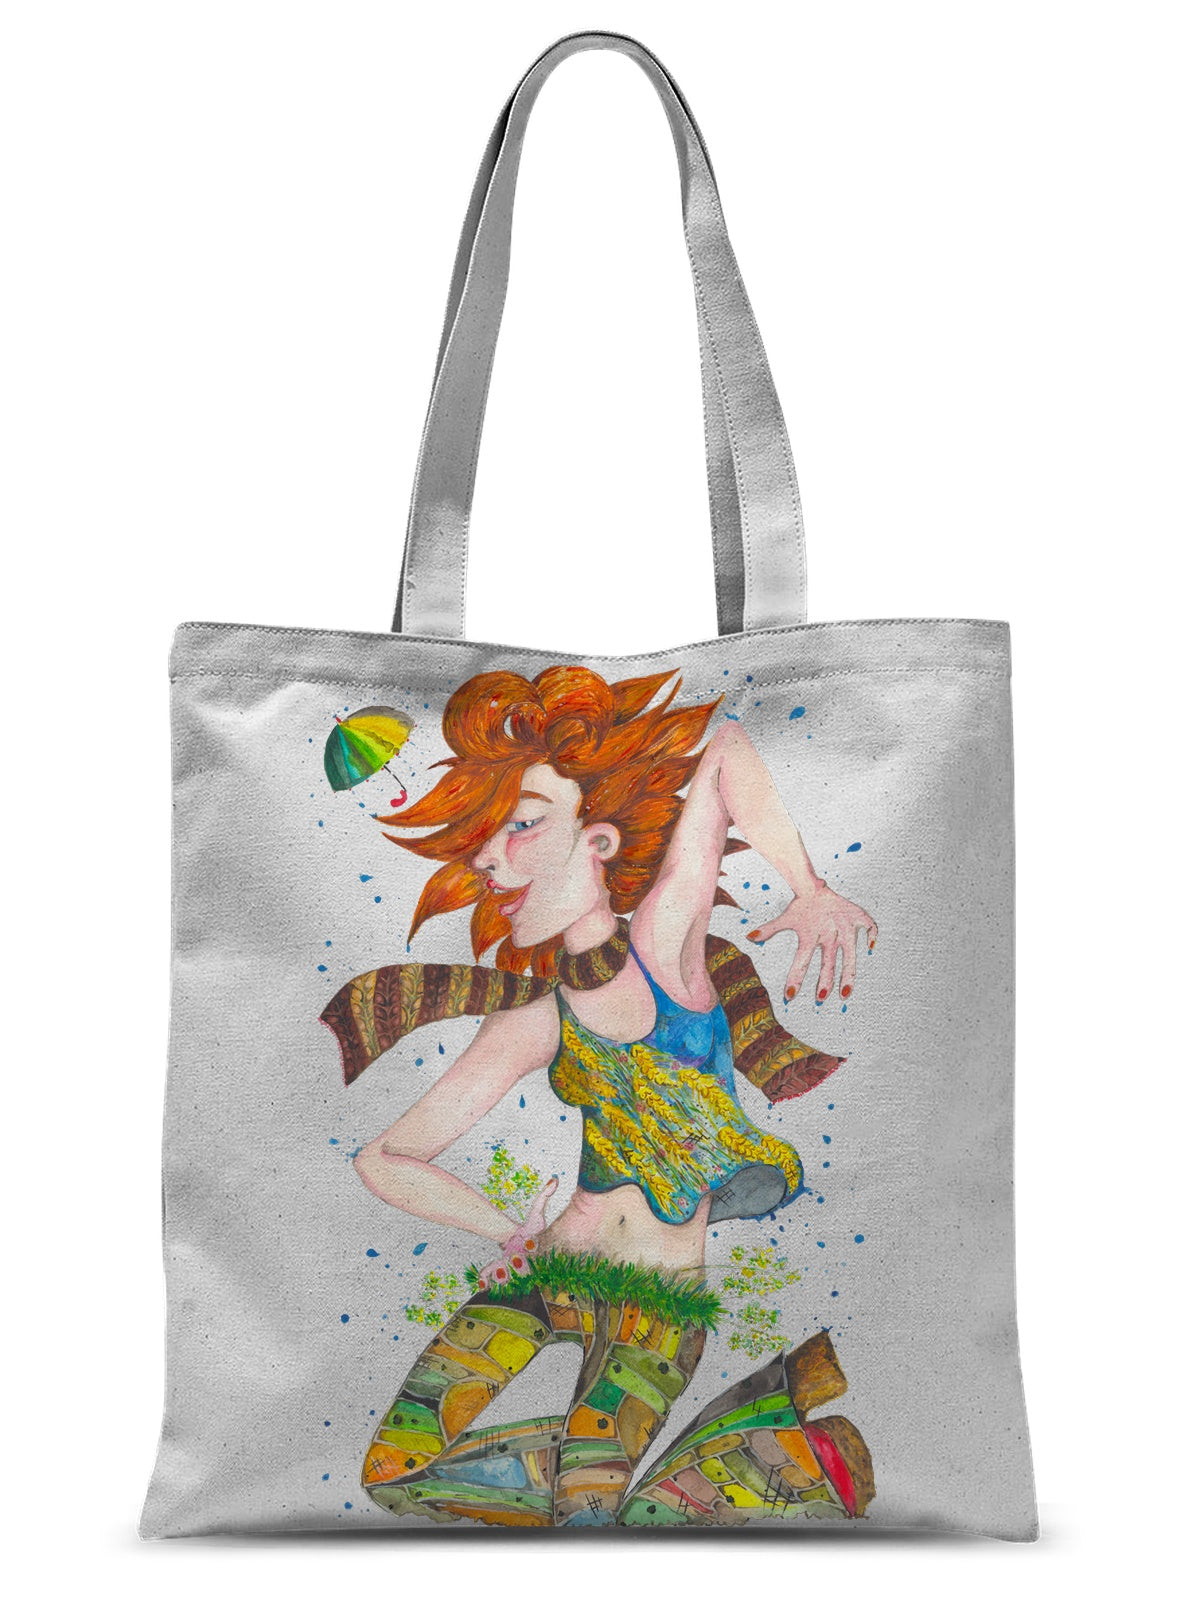 Rain Girl Sublimation Tote Bag